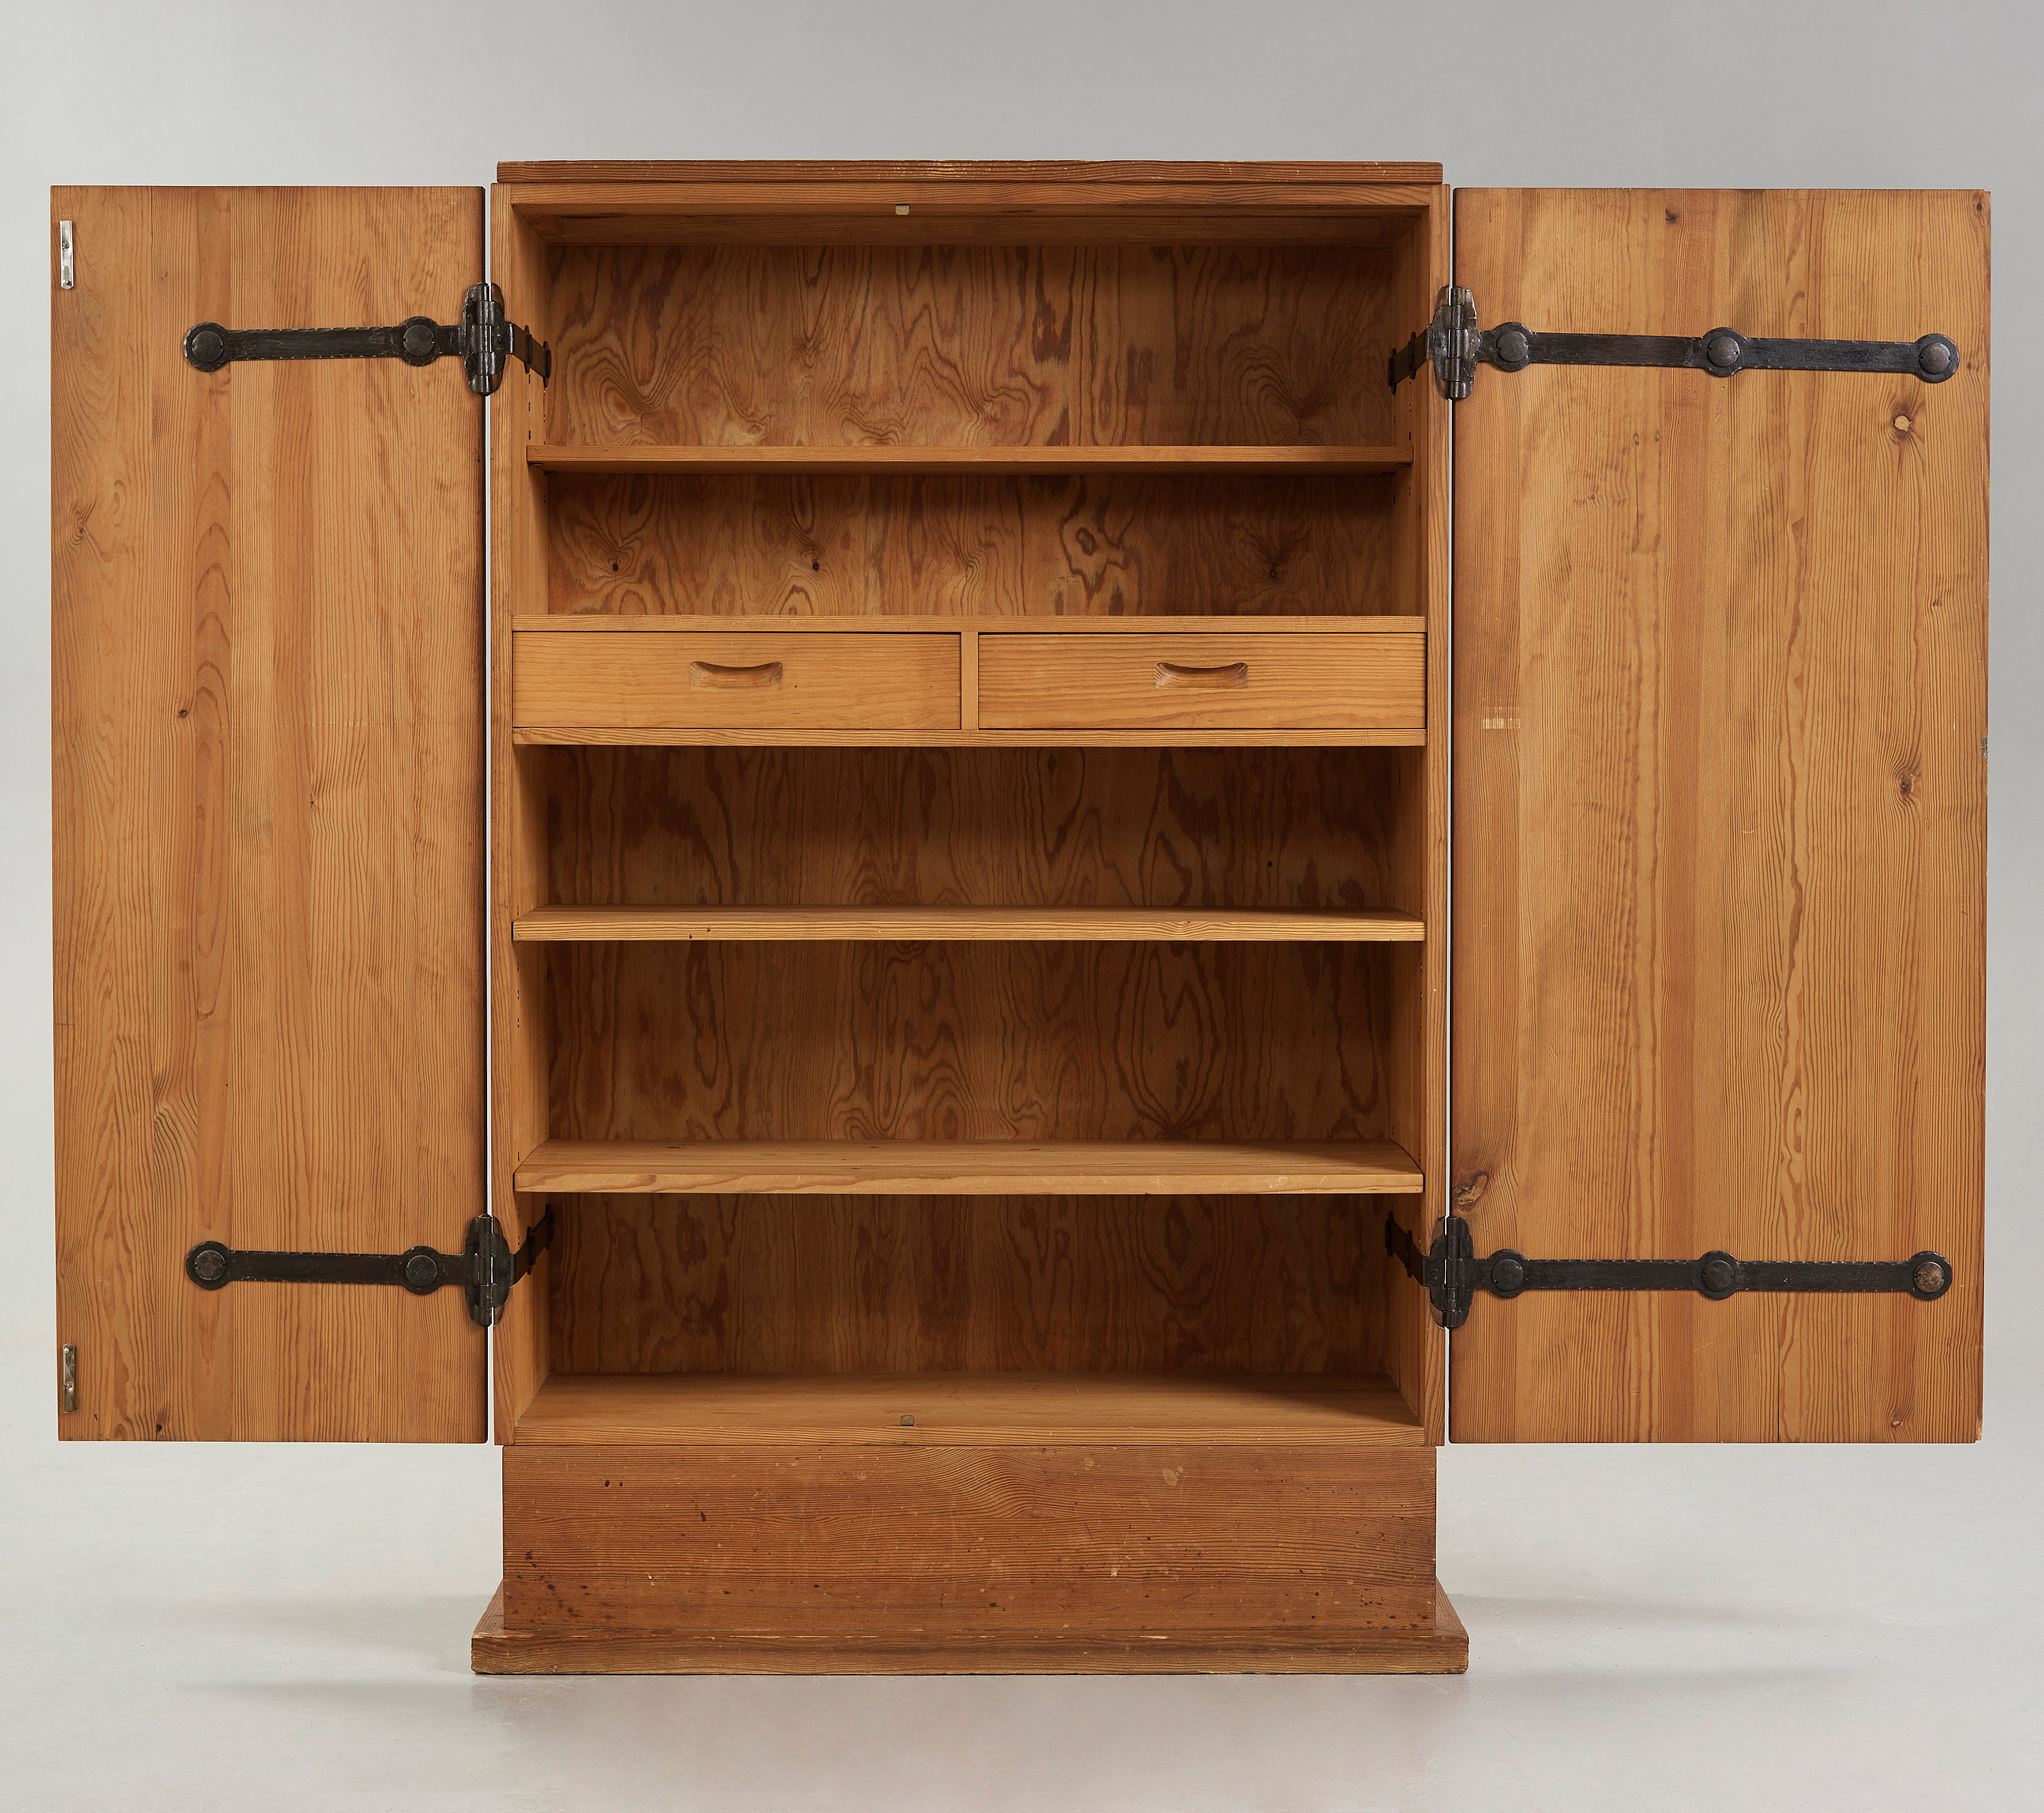 Stained Pine Kitchen Cabinets: An Axel Einar Hjorth 'Lovö' Stained Pine Cabinet, Nordiska